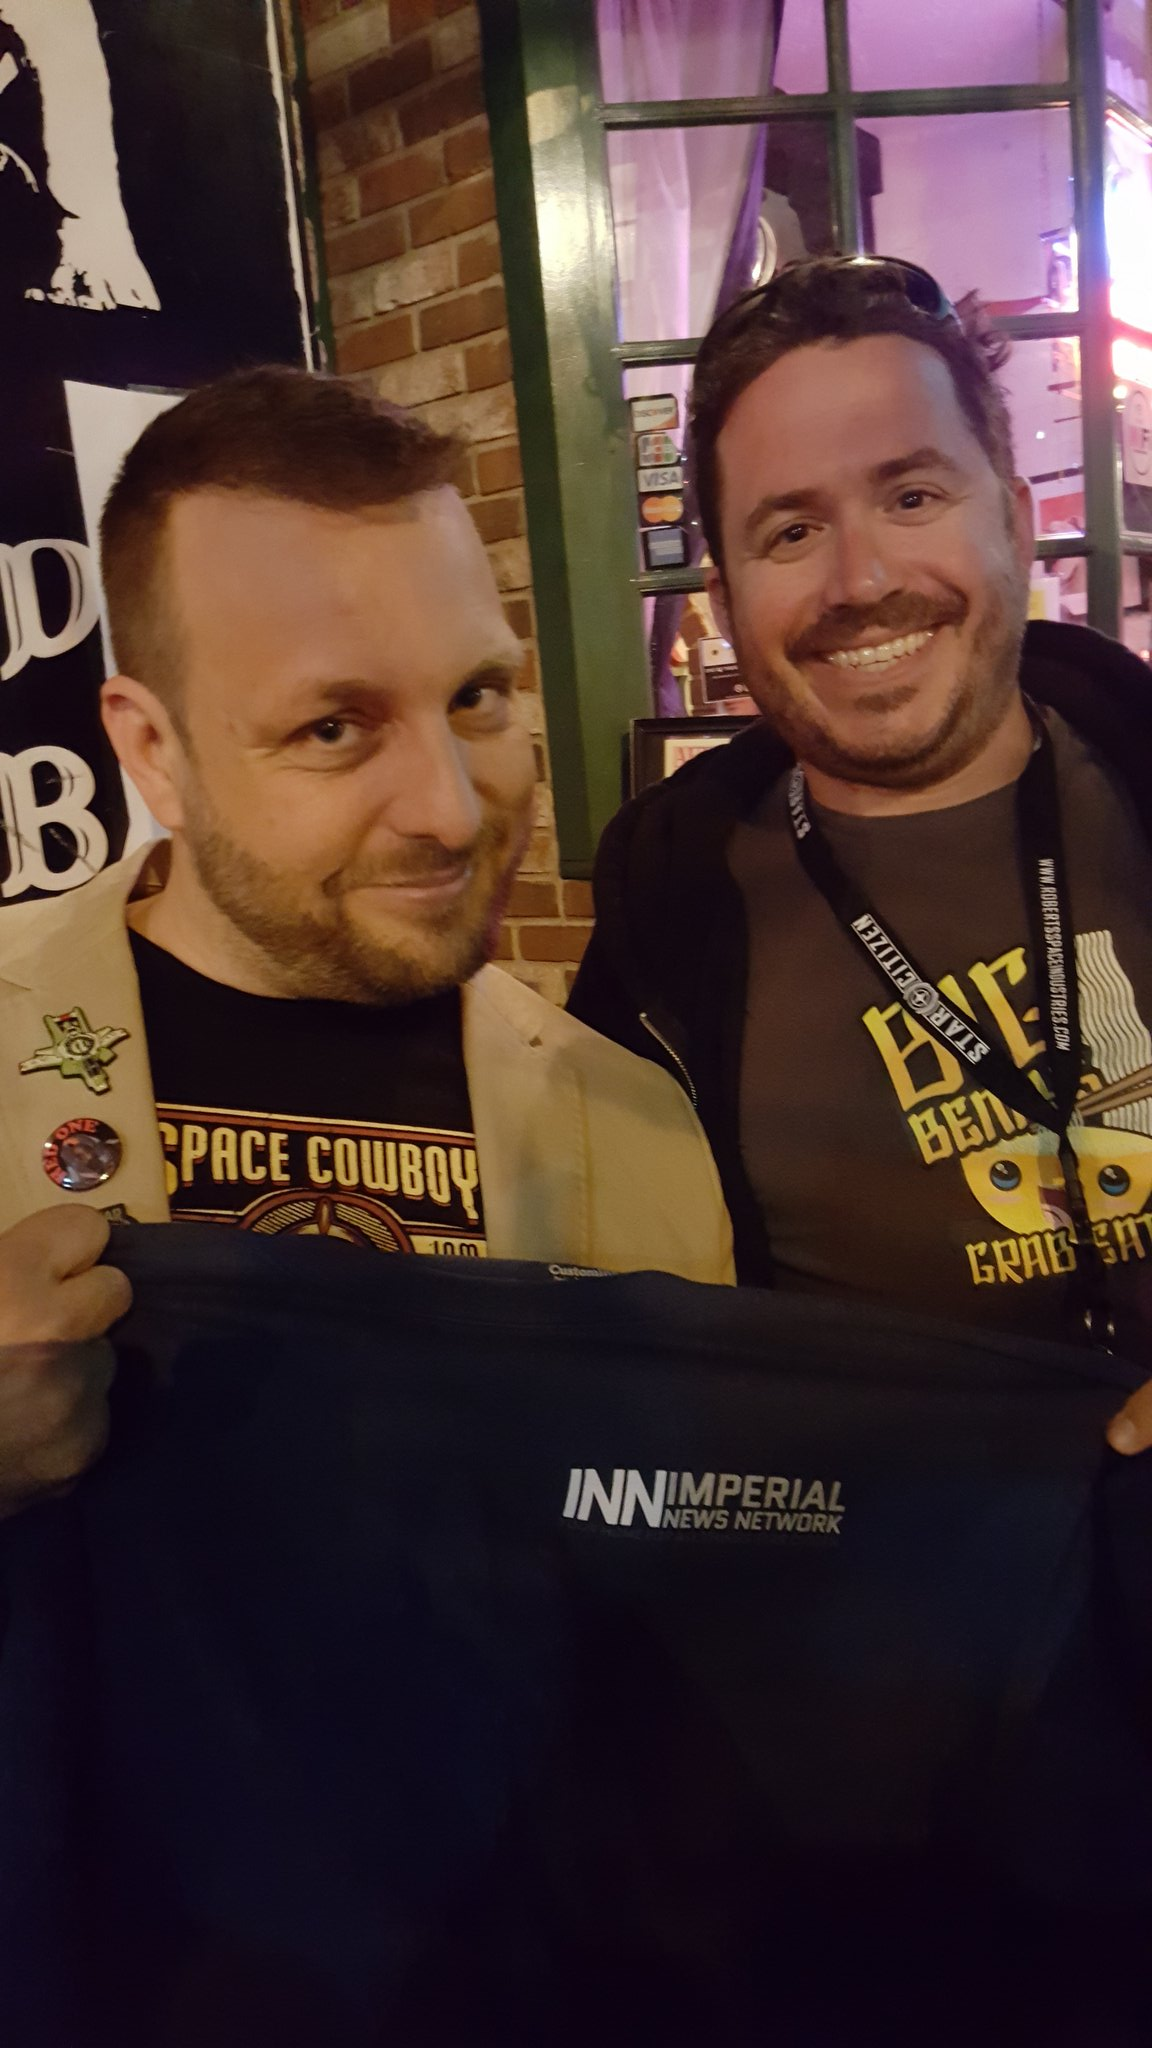 Hanging with @INN_Authentic at the LA #barcitizen @Dicefailure #StarCitizen @RobertsSpaceInd. Glad we could see the local dev's and fans https://t.co/0YV7vyZF9L